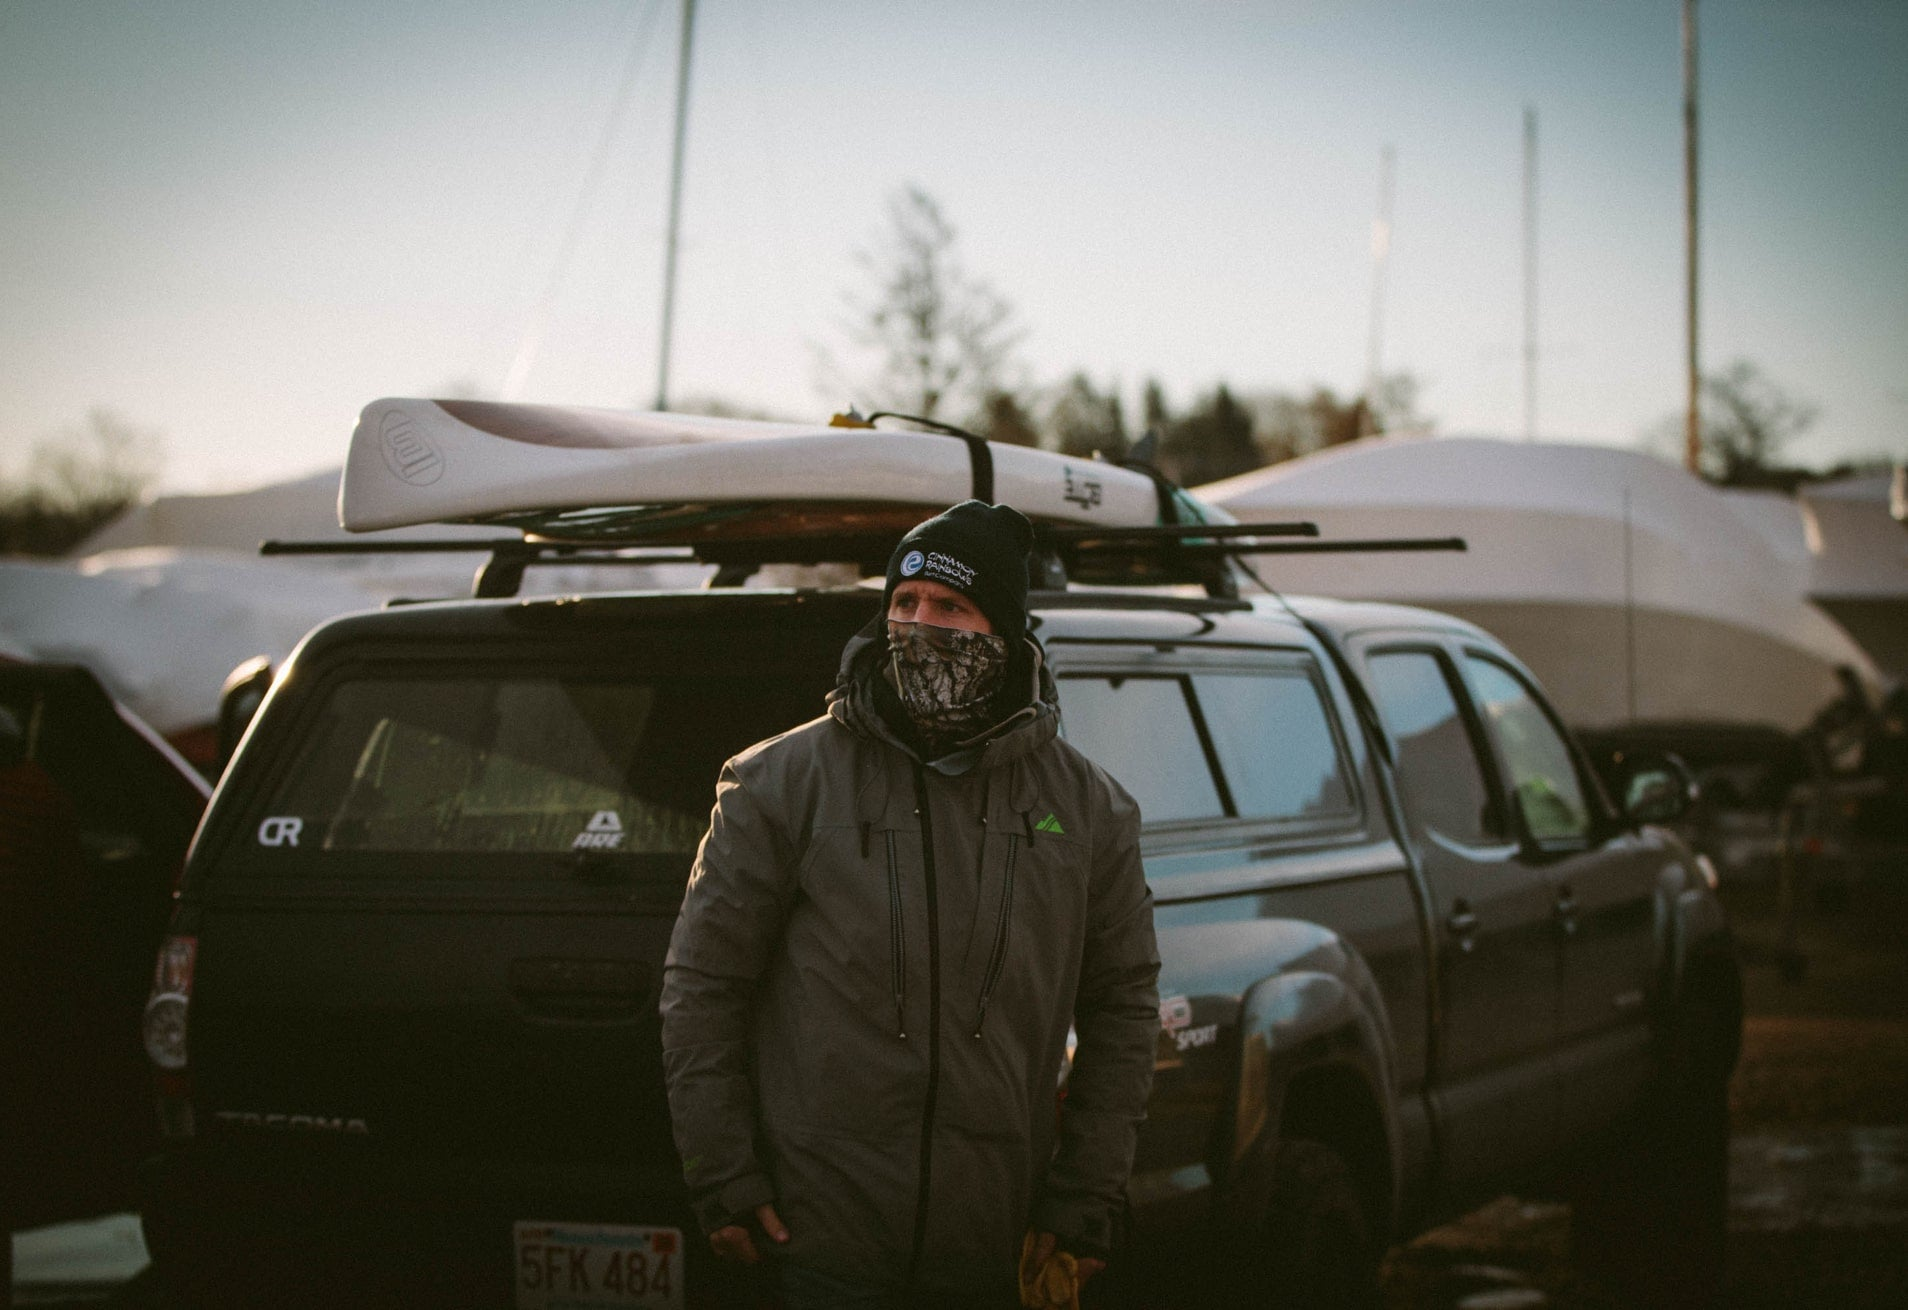 Willis Brown next to Toyota Tacoma with BOTE Rackham Paddle Board on roof